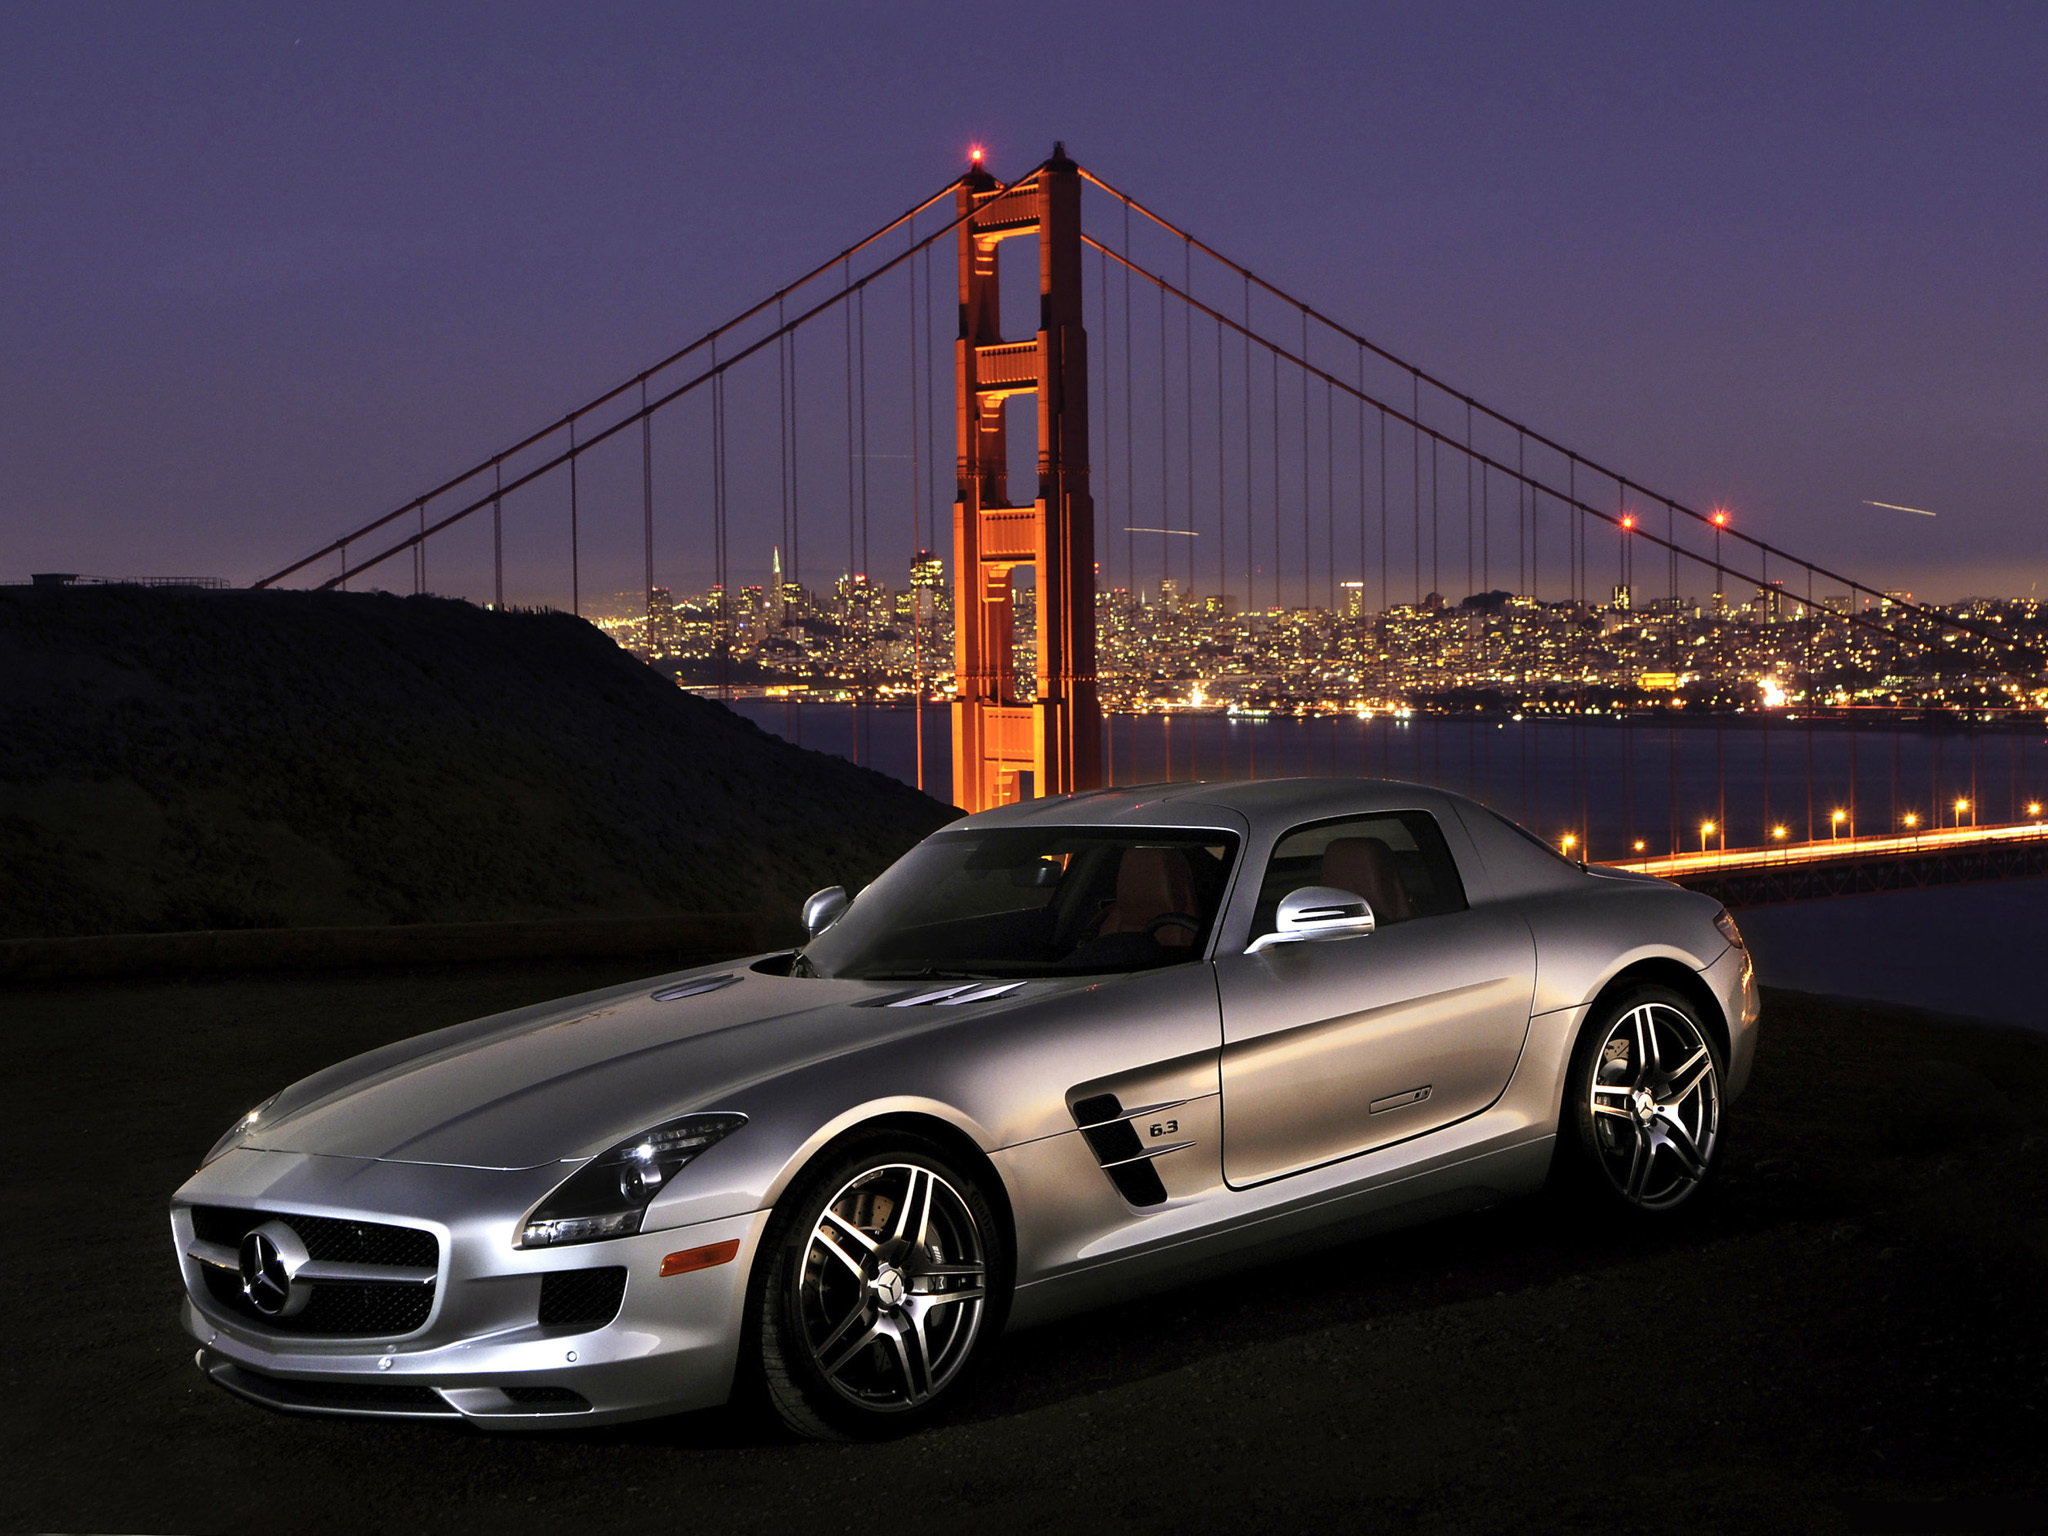 Mercedes Benz Of San Francisco >> Free Download Wallpaper Golden Gate Bridge San Francisco Usa